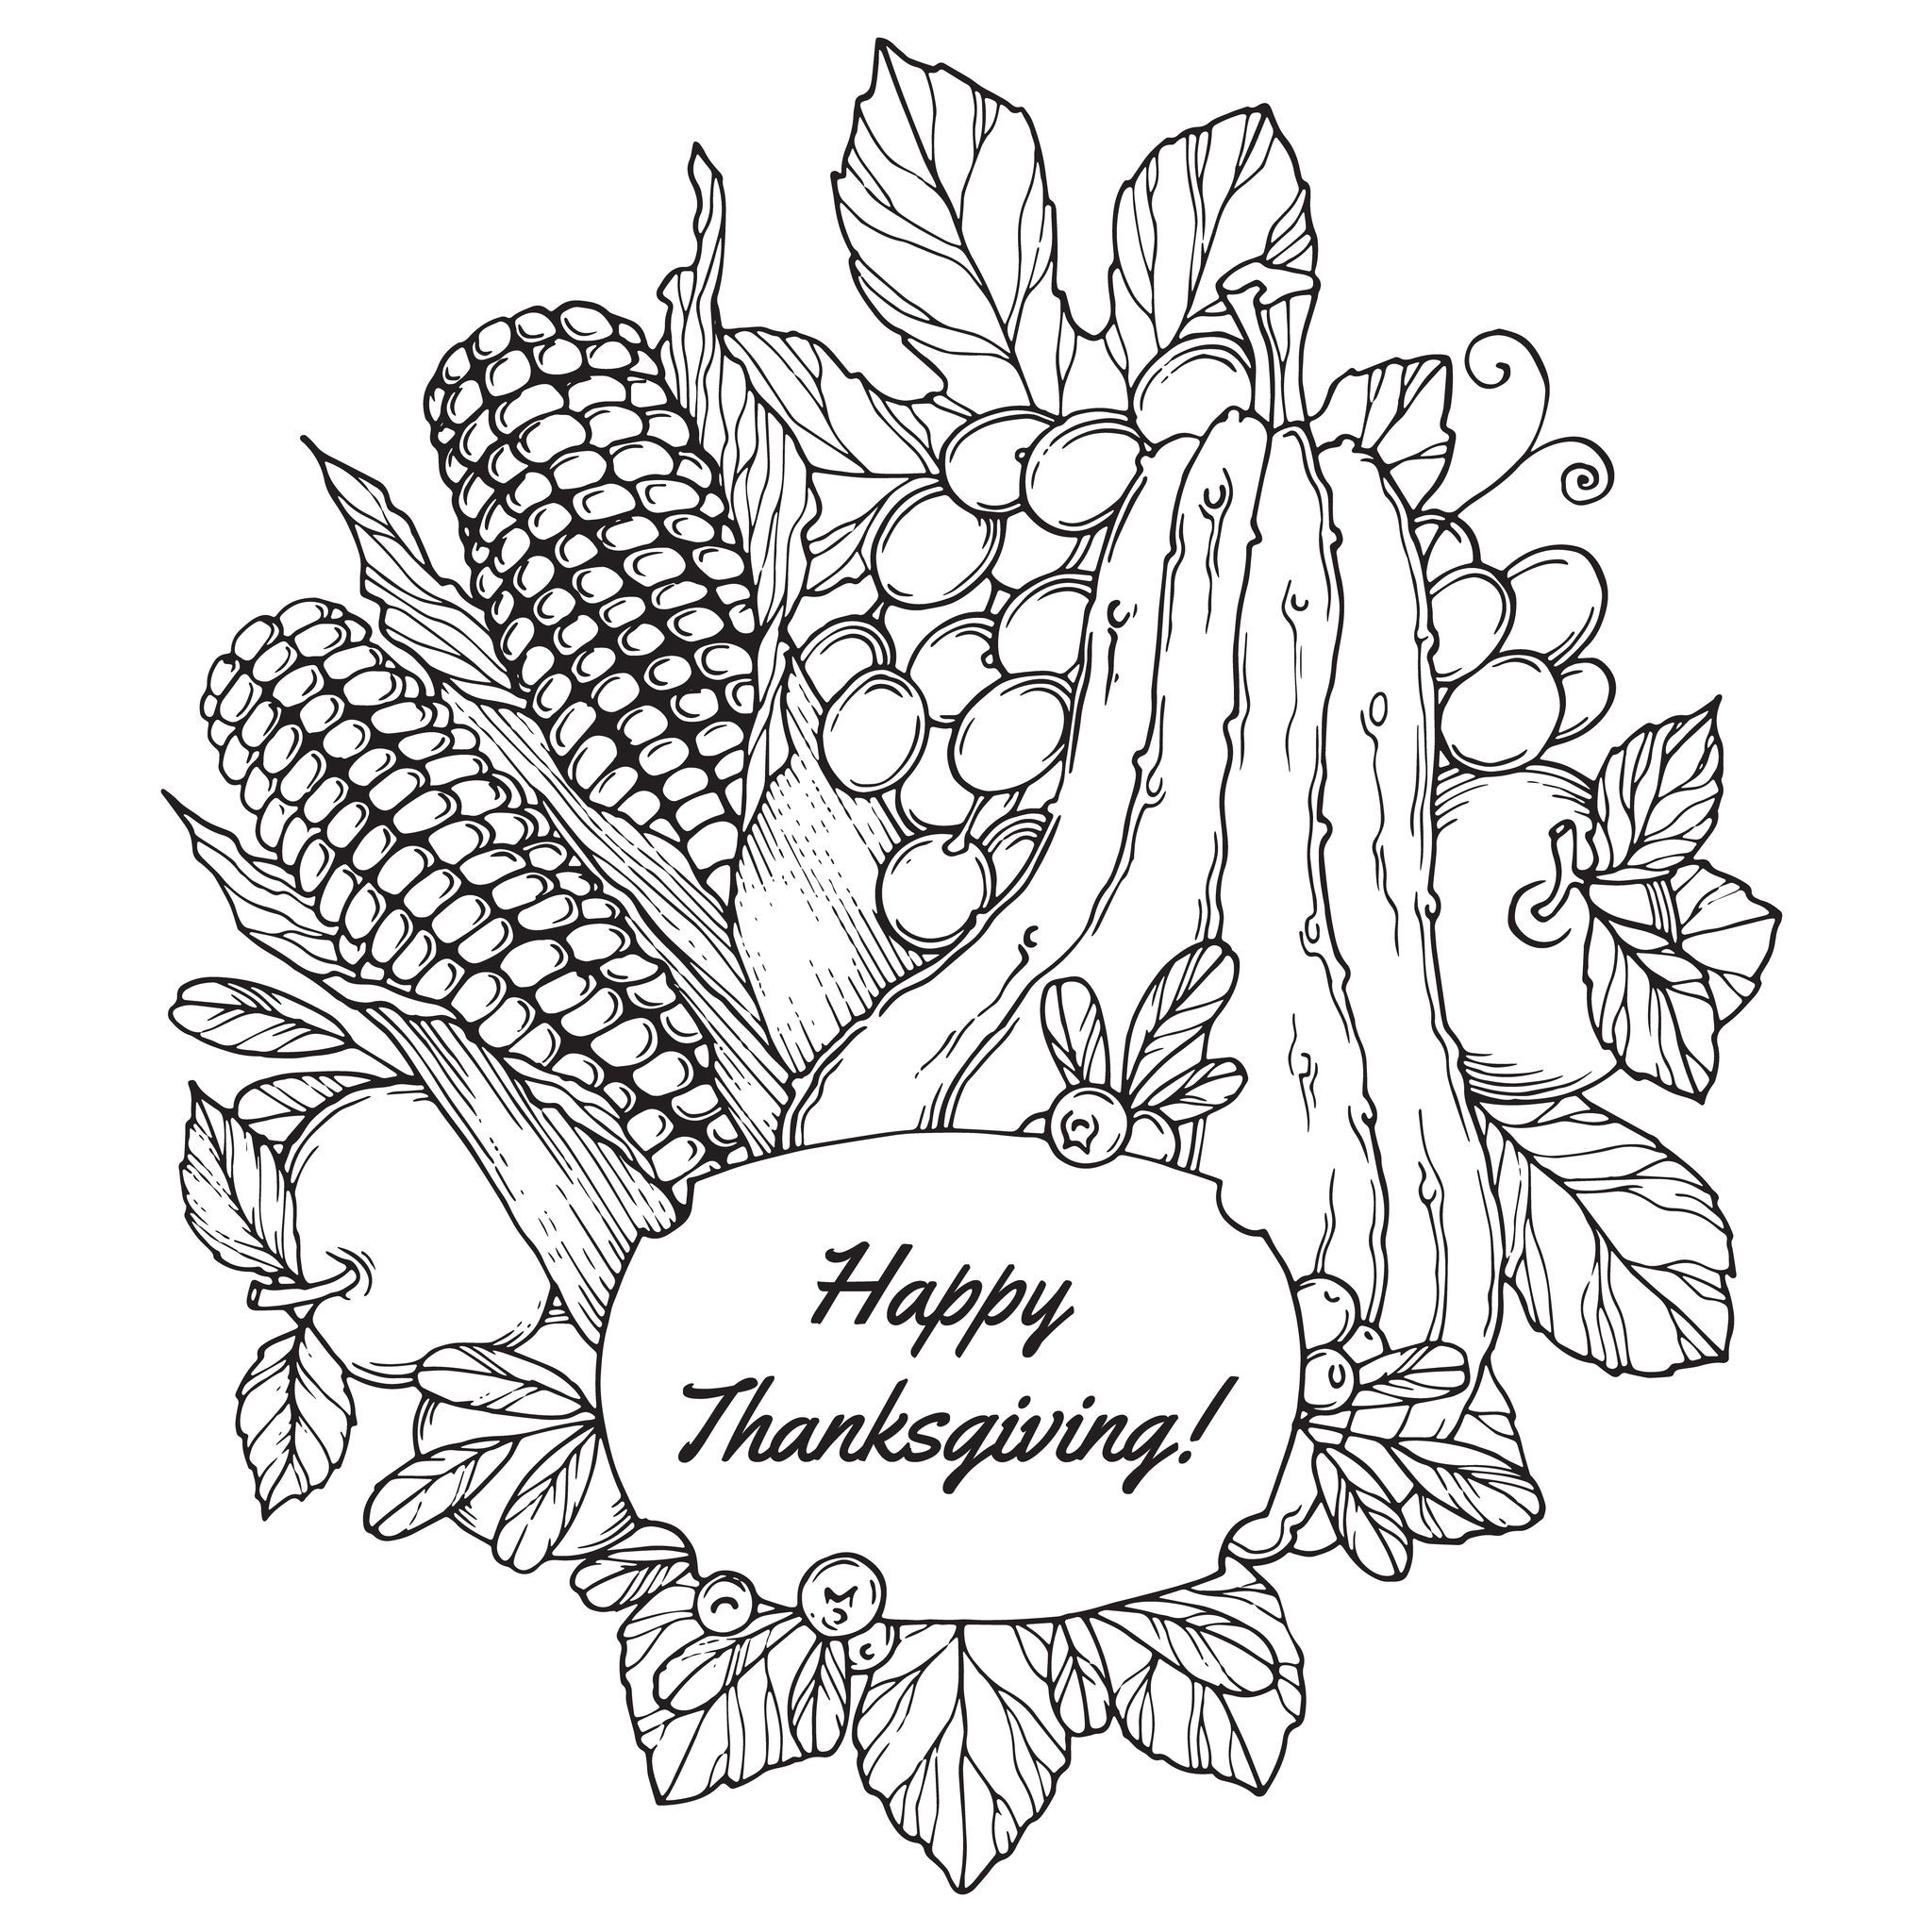 It's just a graphic of Geeky adult coloring pages thanksgiving